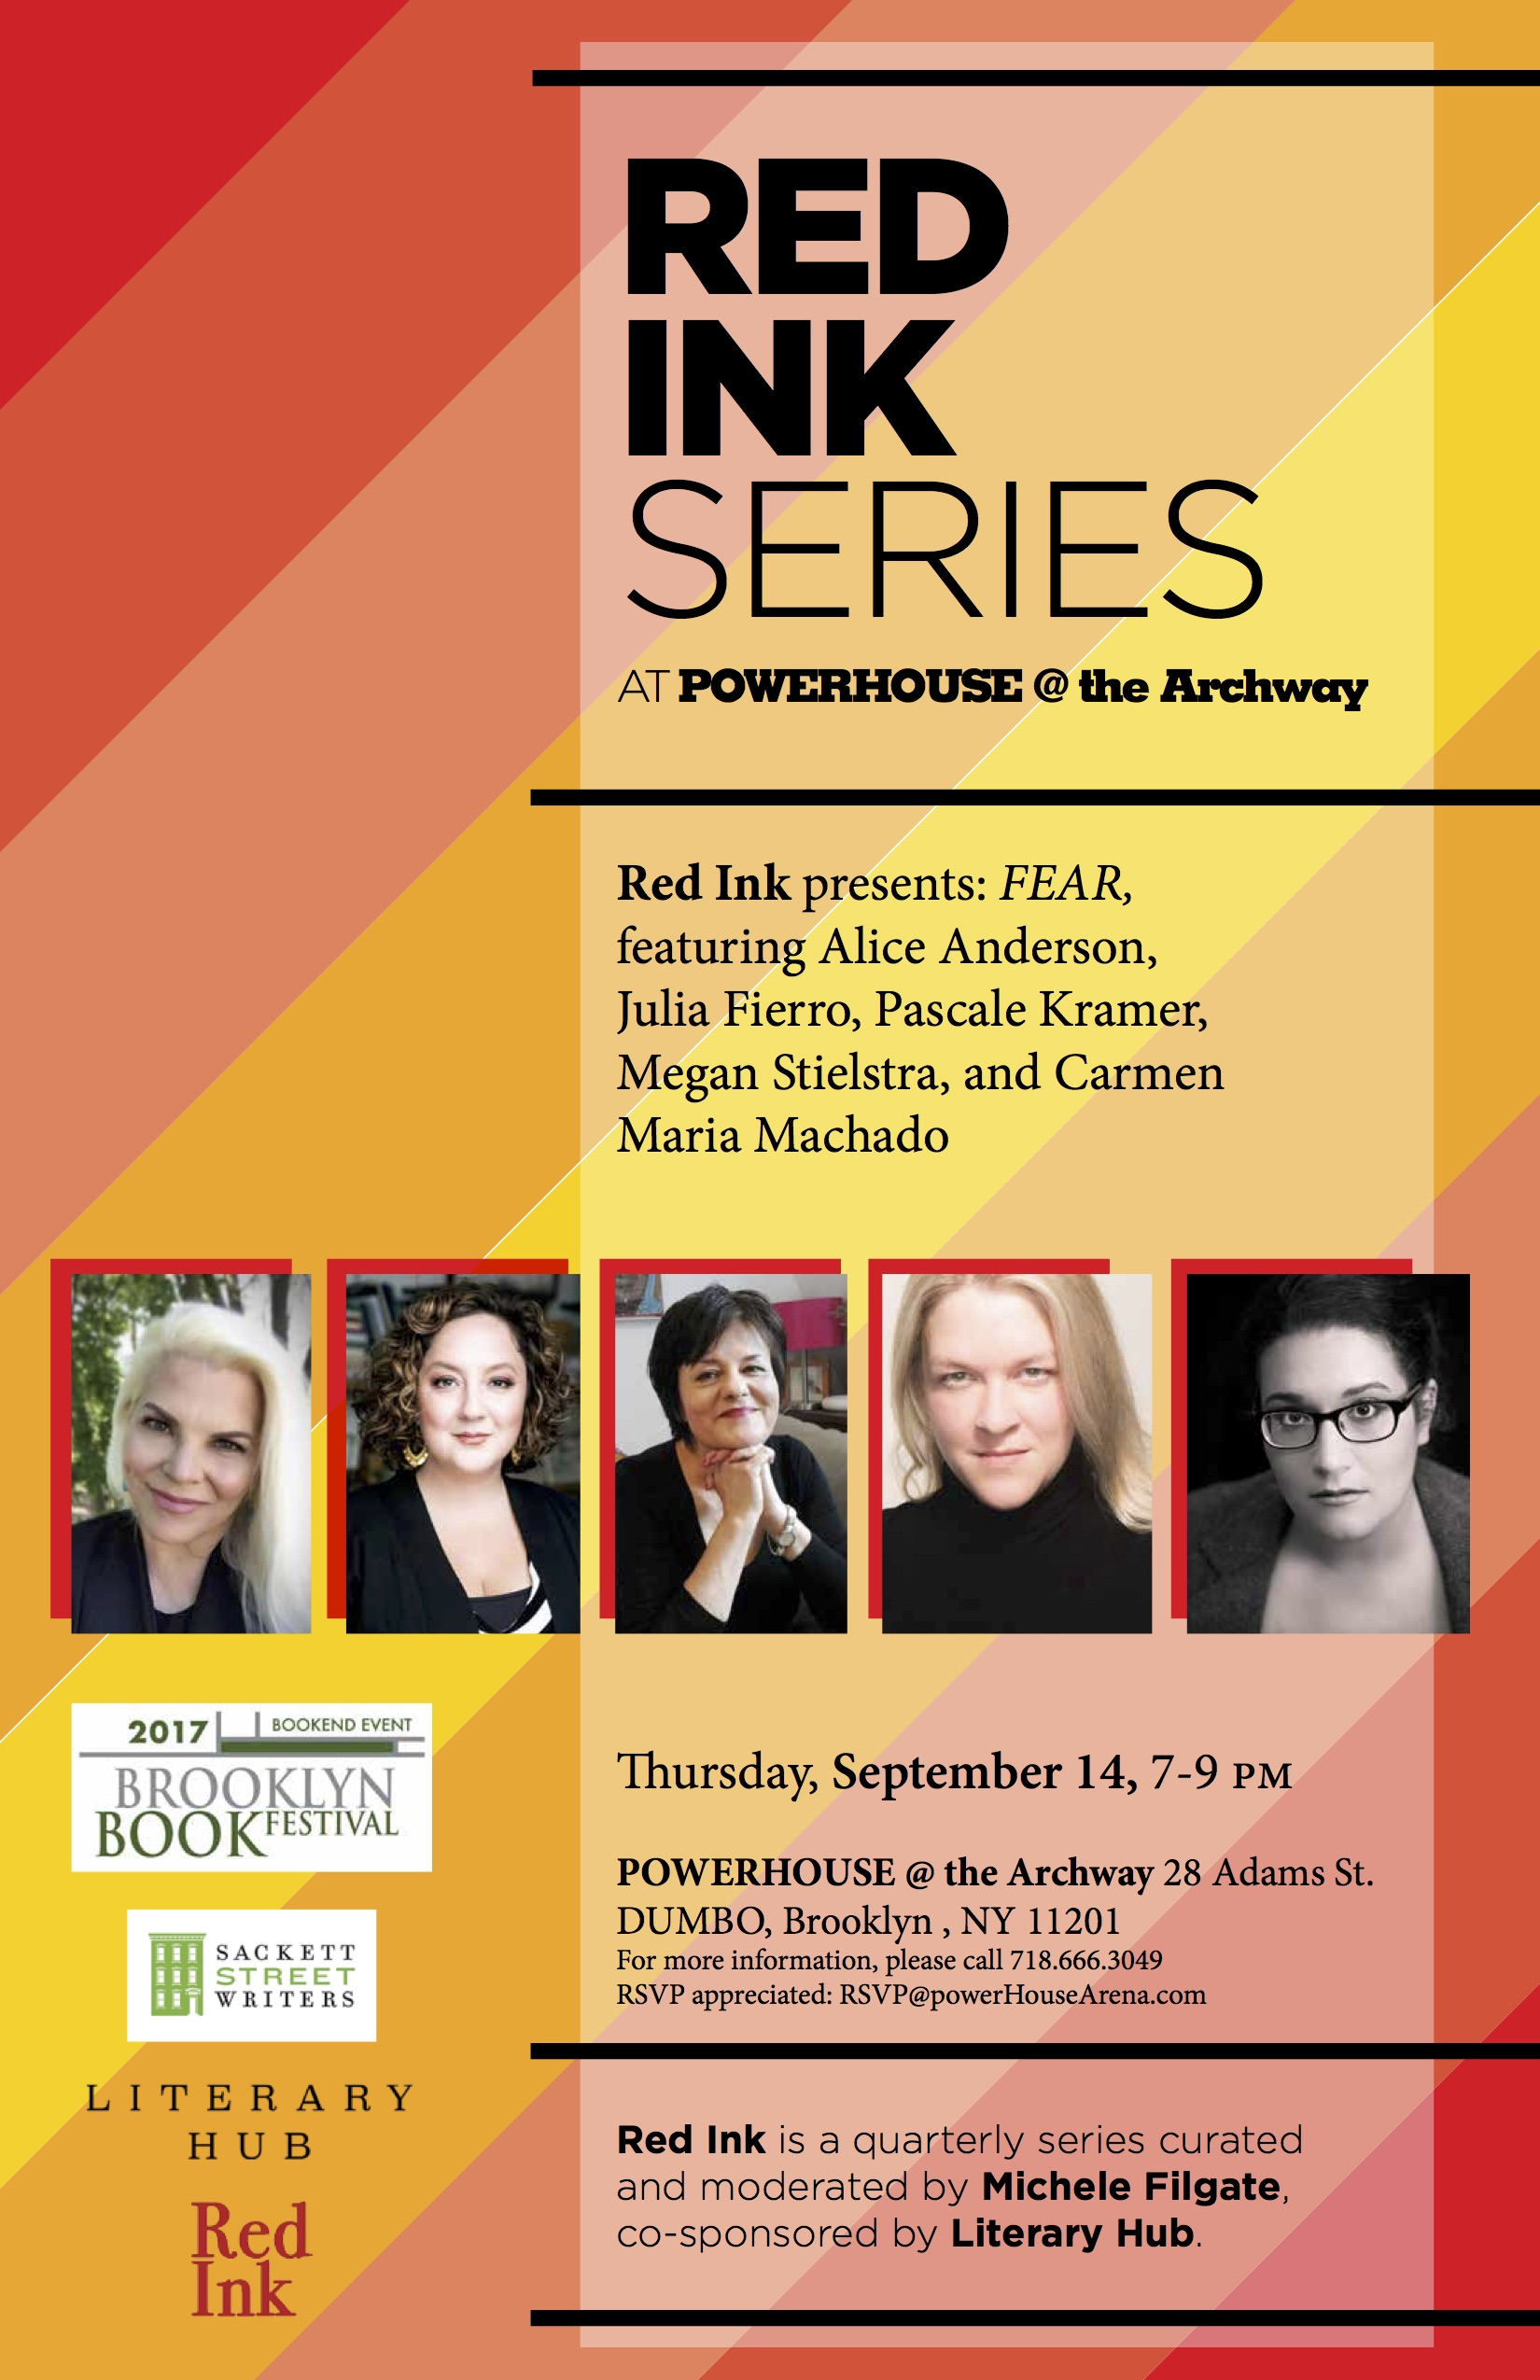 Red Ink Series: FEAR, hosted by Michele Filgate with Alice Anderson, Julia Fierro, Pascale Kramer, Megan Stielstra and Carmen Maria Machado